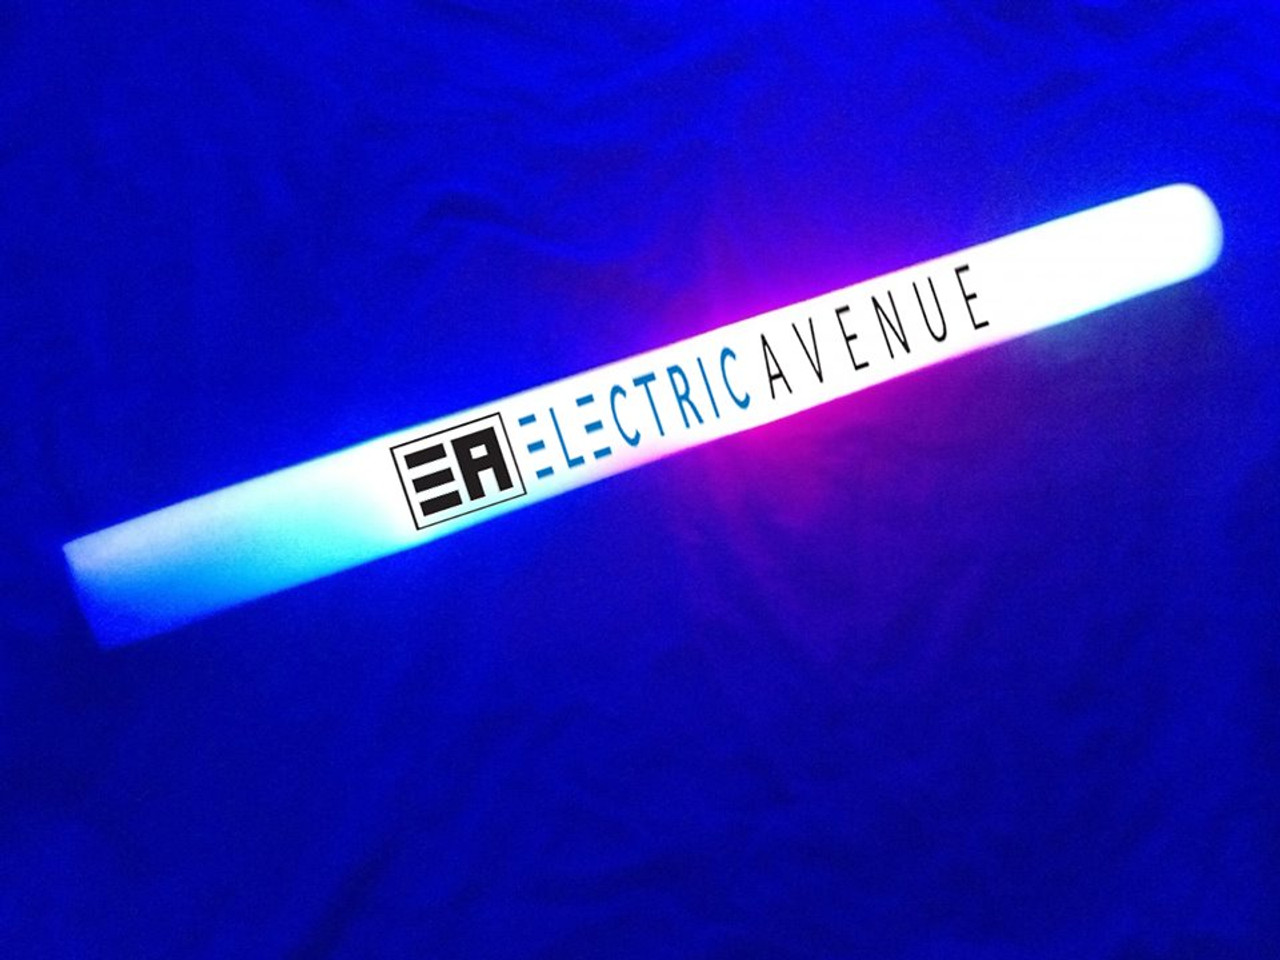 LED Foam Stick, Corporate, Branding, Wedding, Bridal, Promo, Custom, Print, Foamstick, Glow, Baton, Foamy